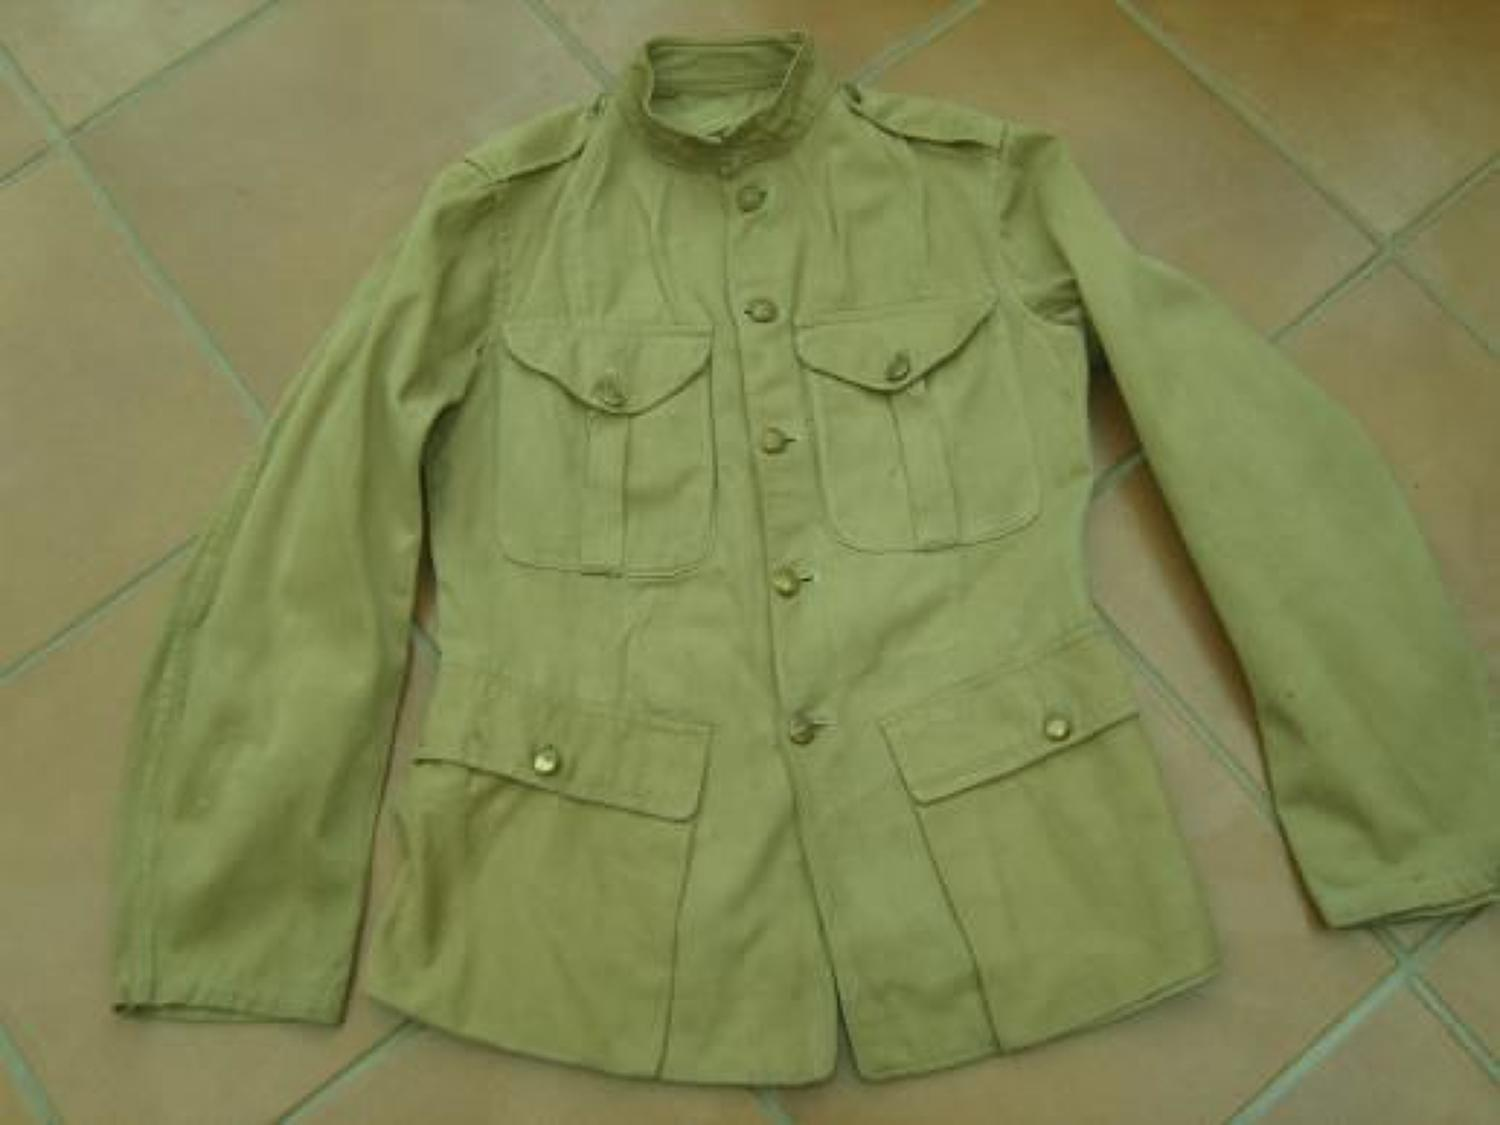 British Army Boer War Other Ranks Issue Tunic.